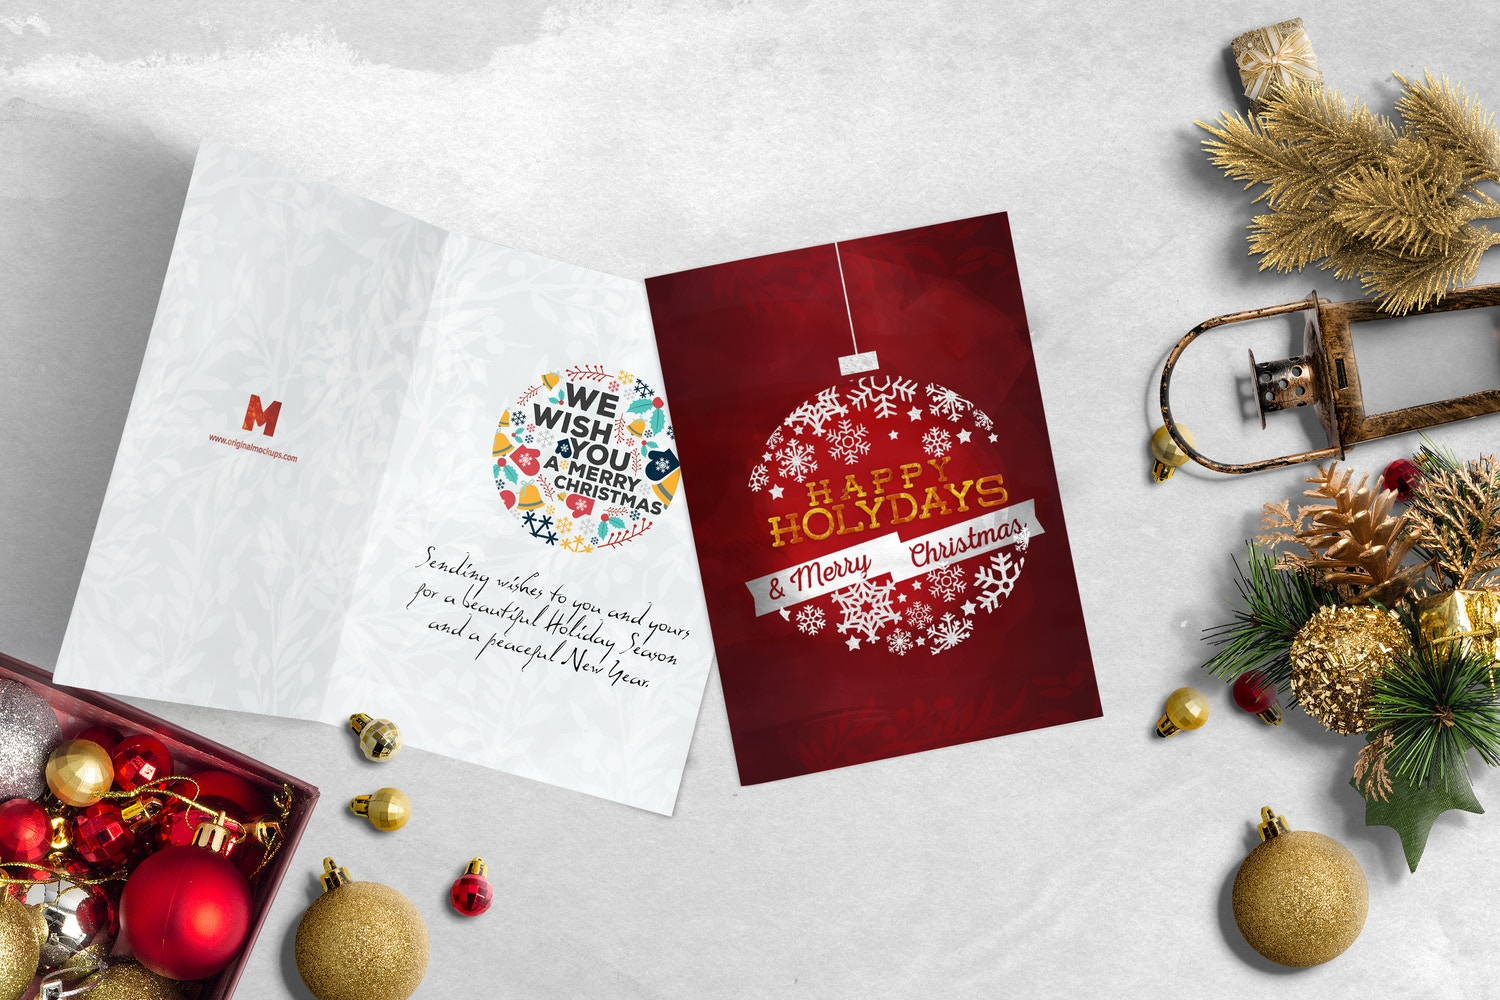 Christmas Header and Hero Scene Mockup 19 por Original Mockups en Original Mockups